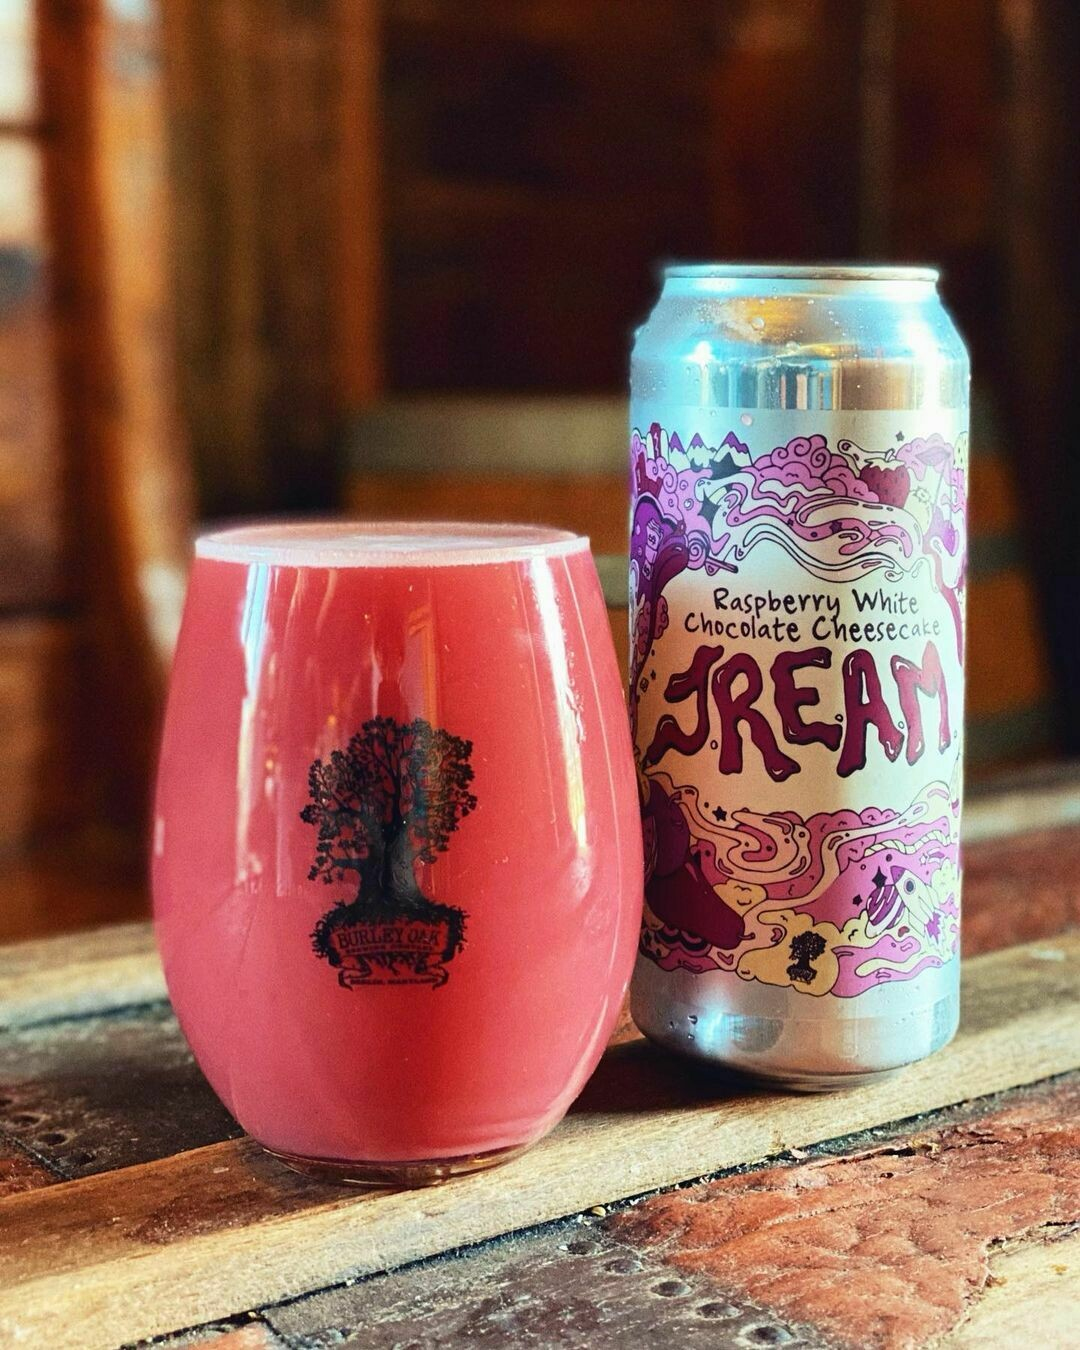 Burley Oak Brewing Company Raspberry White Chocolate Cheesecake JREAM Sour Ale (4-PACK)